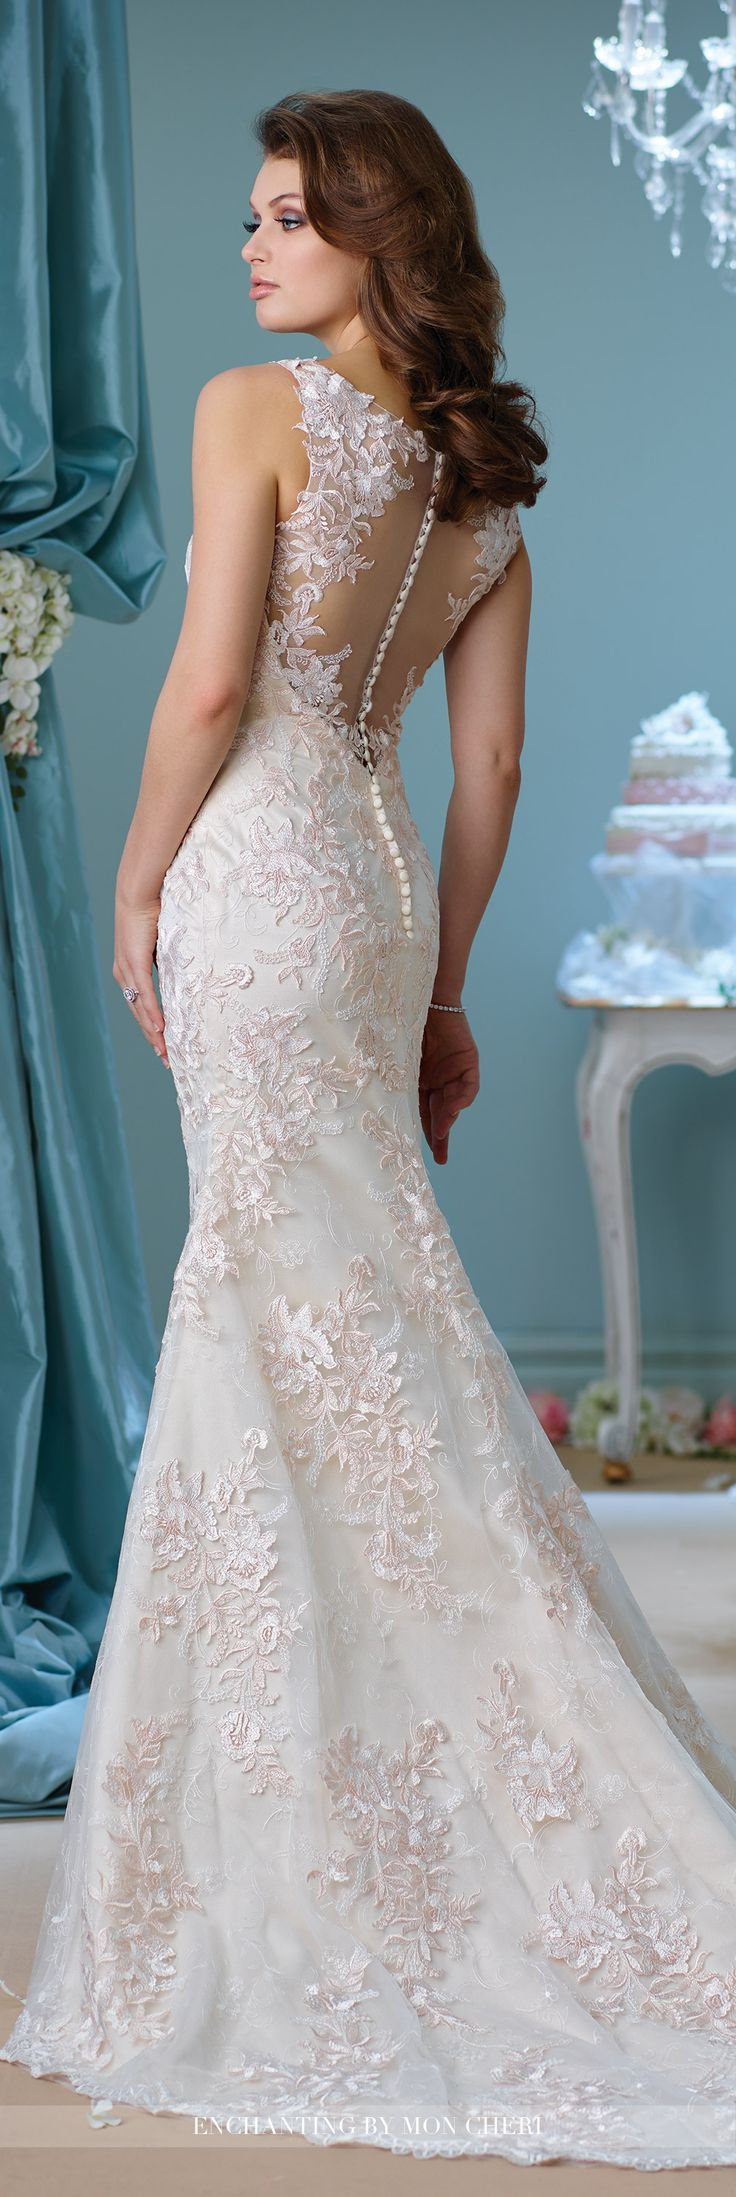 Spectacular Embroidered Trumpet Wedding Dress Enchanting by Mon Cheri